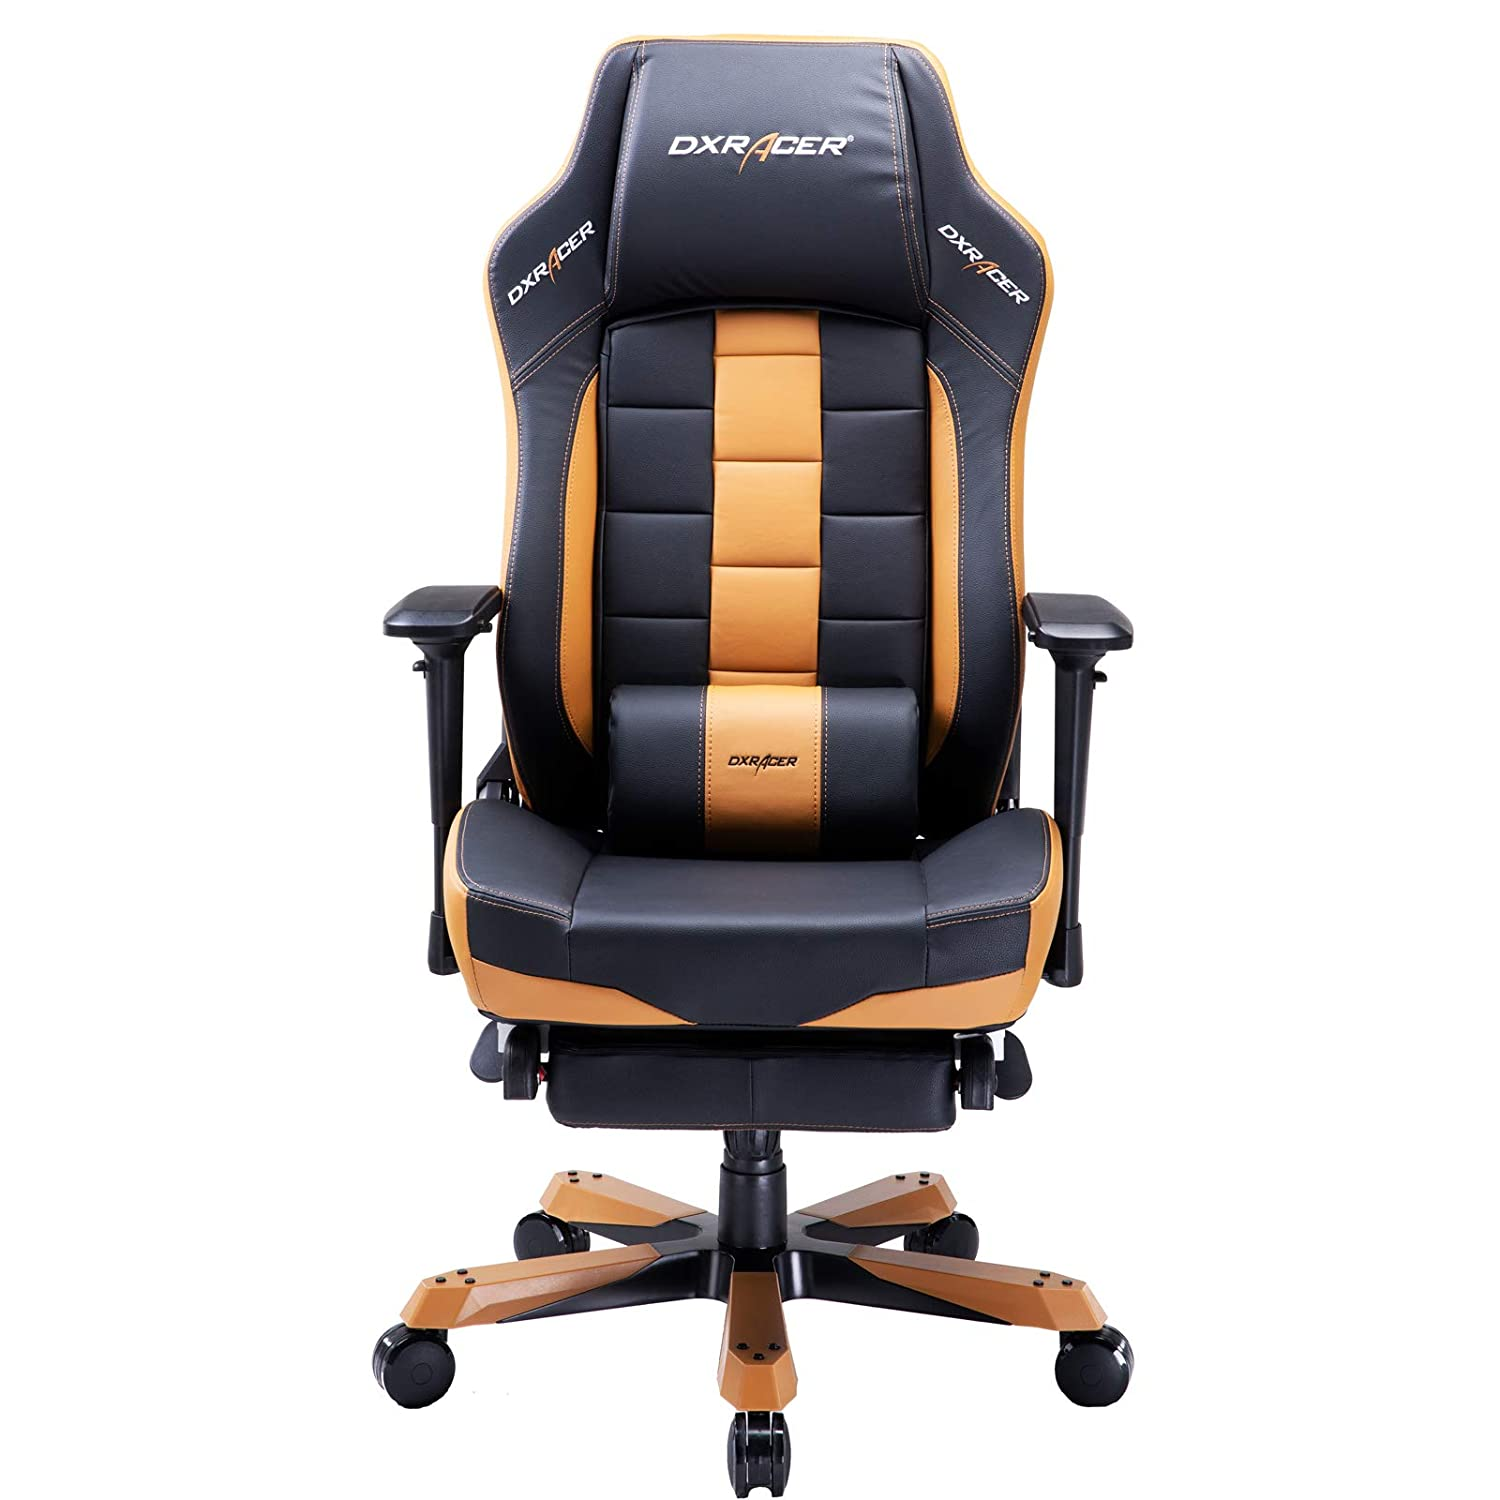 DXRacer USA Classic Series OH CA120 NC Gaming Chair Computer Chair Office Chair with Footrest, Ergonomic Design, Swivel Tilt Recline, Adjustable with Tilt Angle Lock, Includes Lumbar Cushion Tan